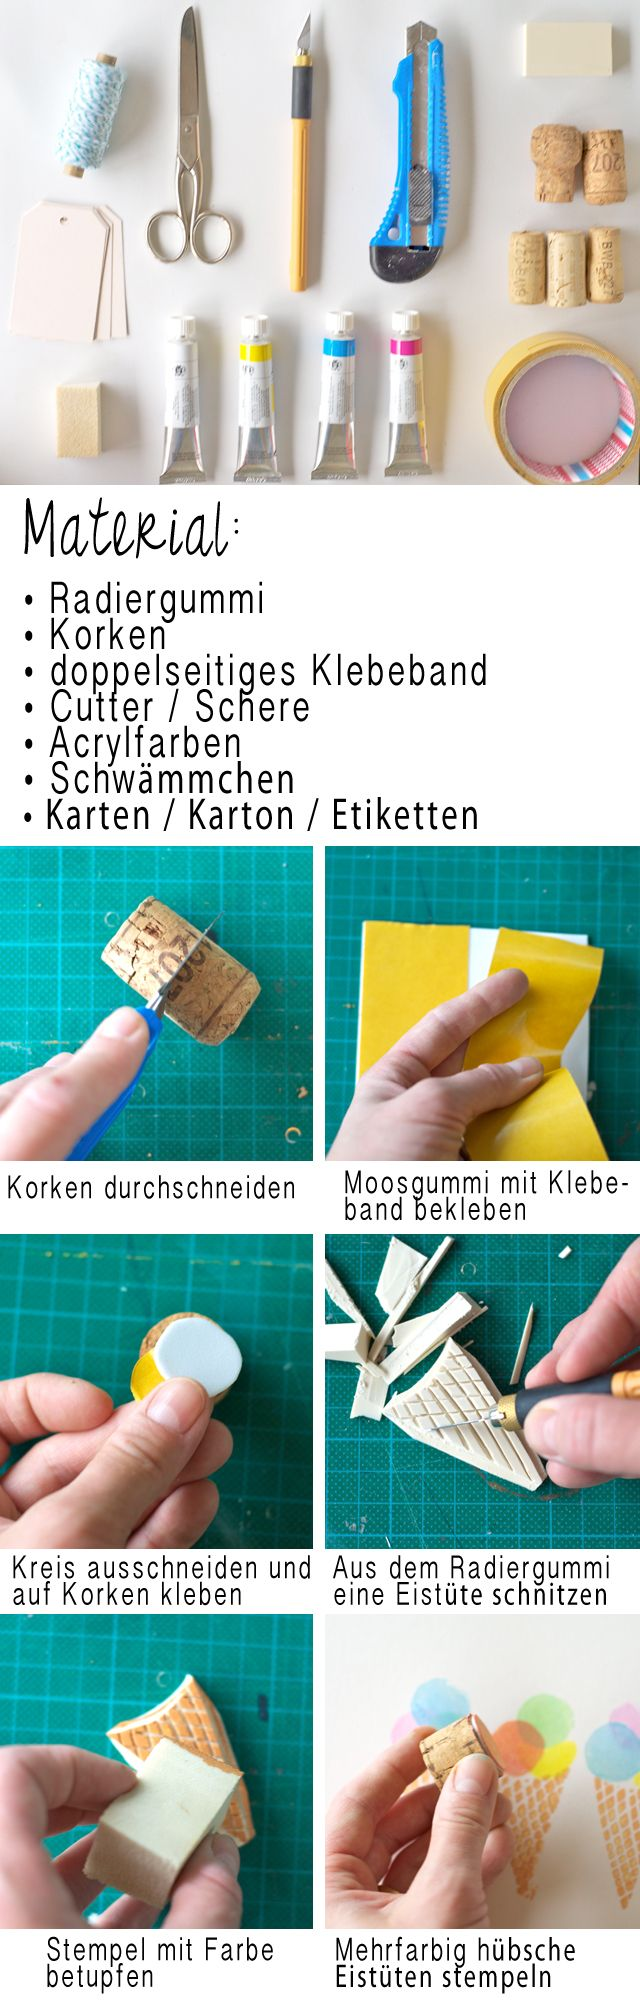 Sophisticated Stempel Selber Machen Best Choice Of Frozen Joghurt: Einfach Machen! Www.inspirationreview Https://www.inspirationreview/pin/93027548531282229/ |